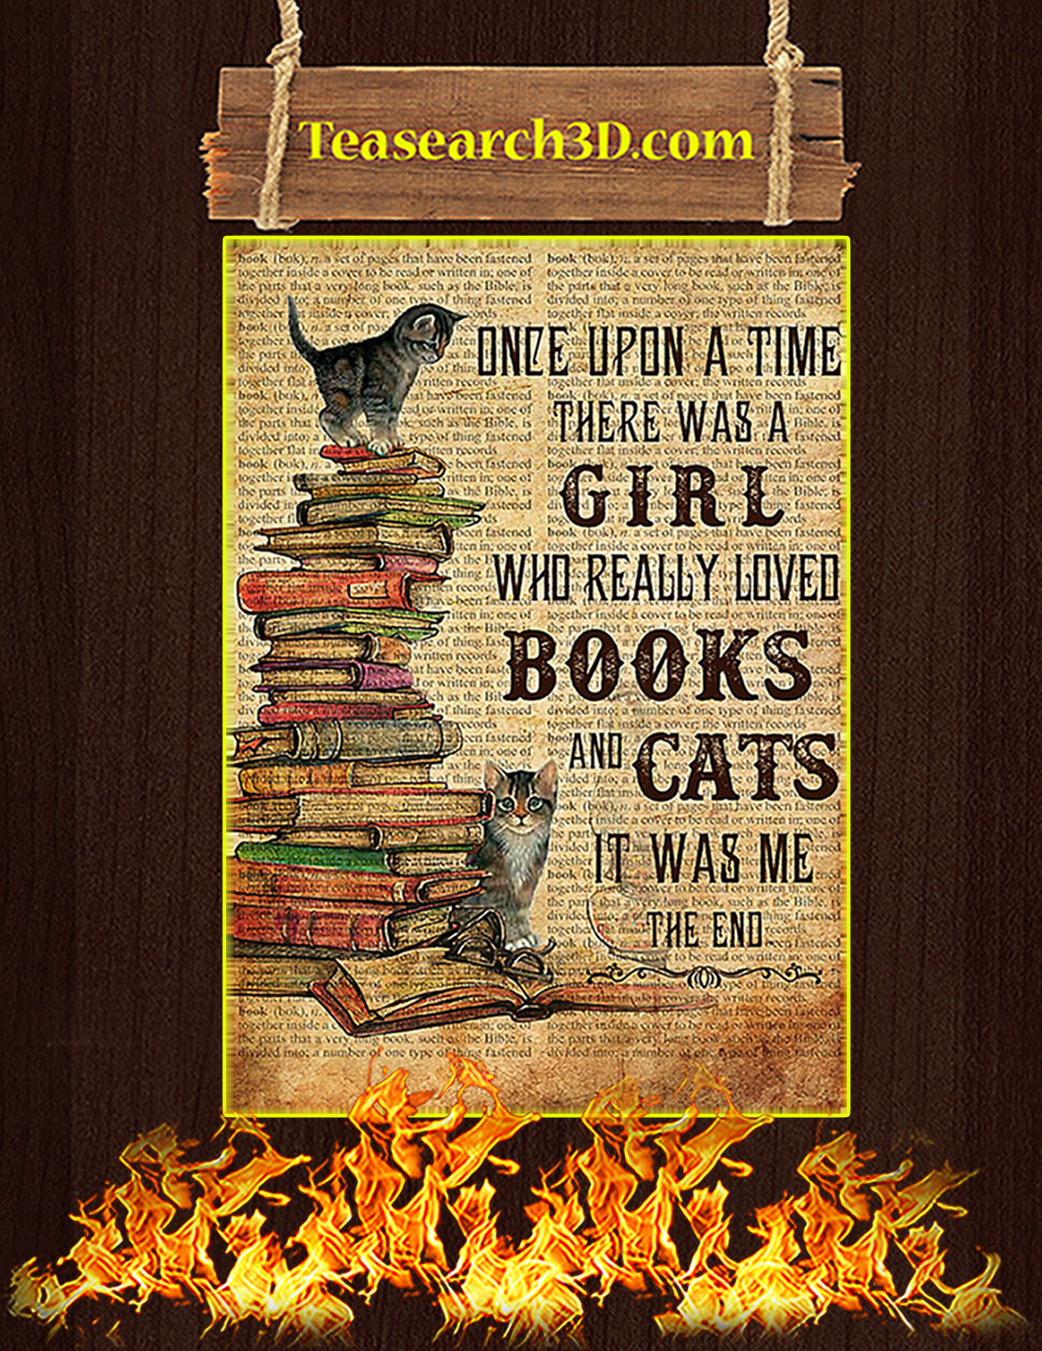 One upon a time there was a girl who really loved books and cats Poster A1